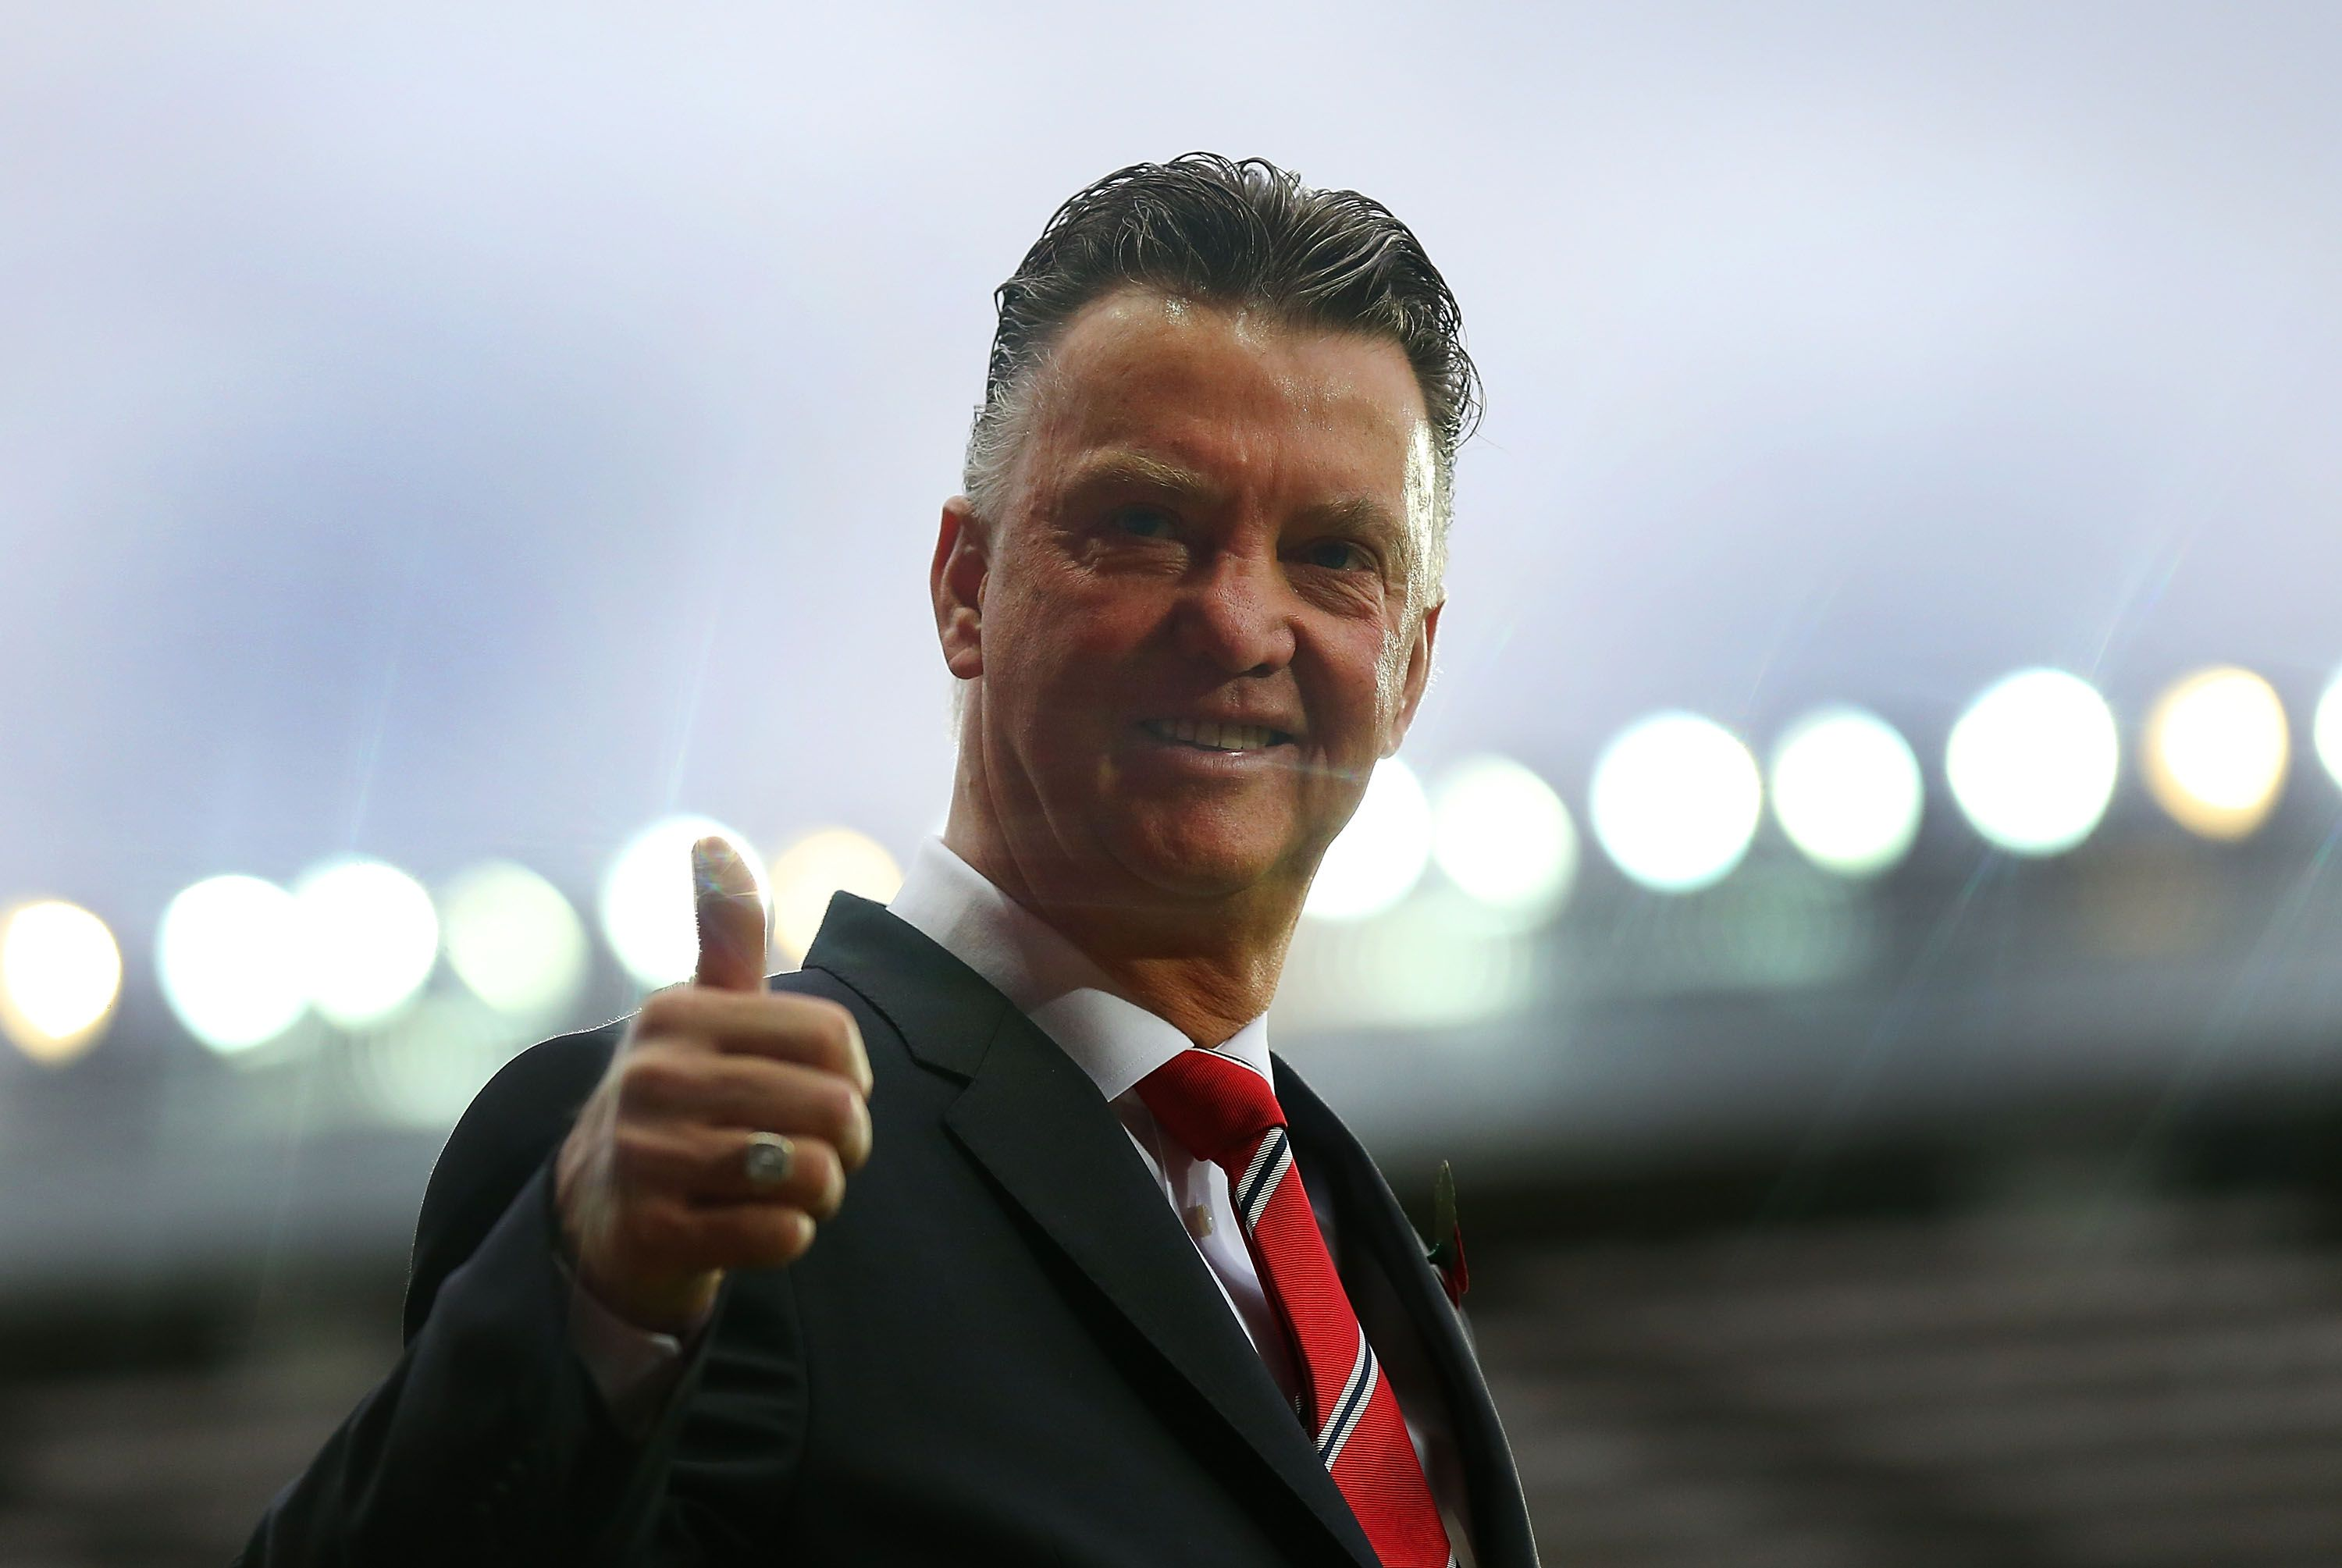 Louis van Gaal got what he deserved at Manchester United, says Ruud Gullit